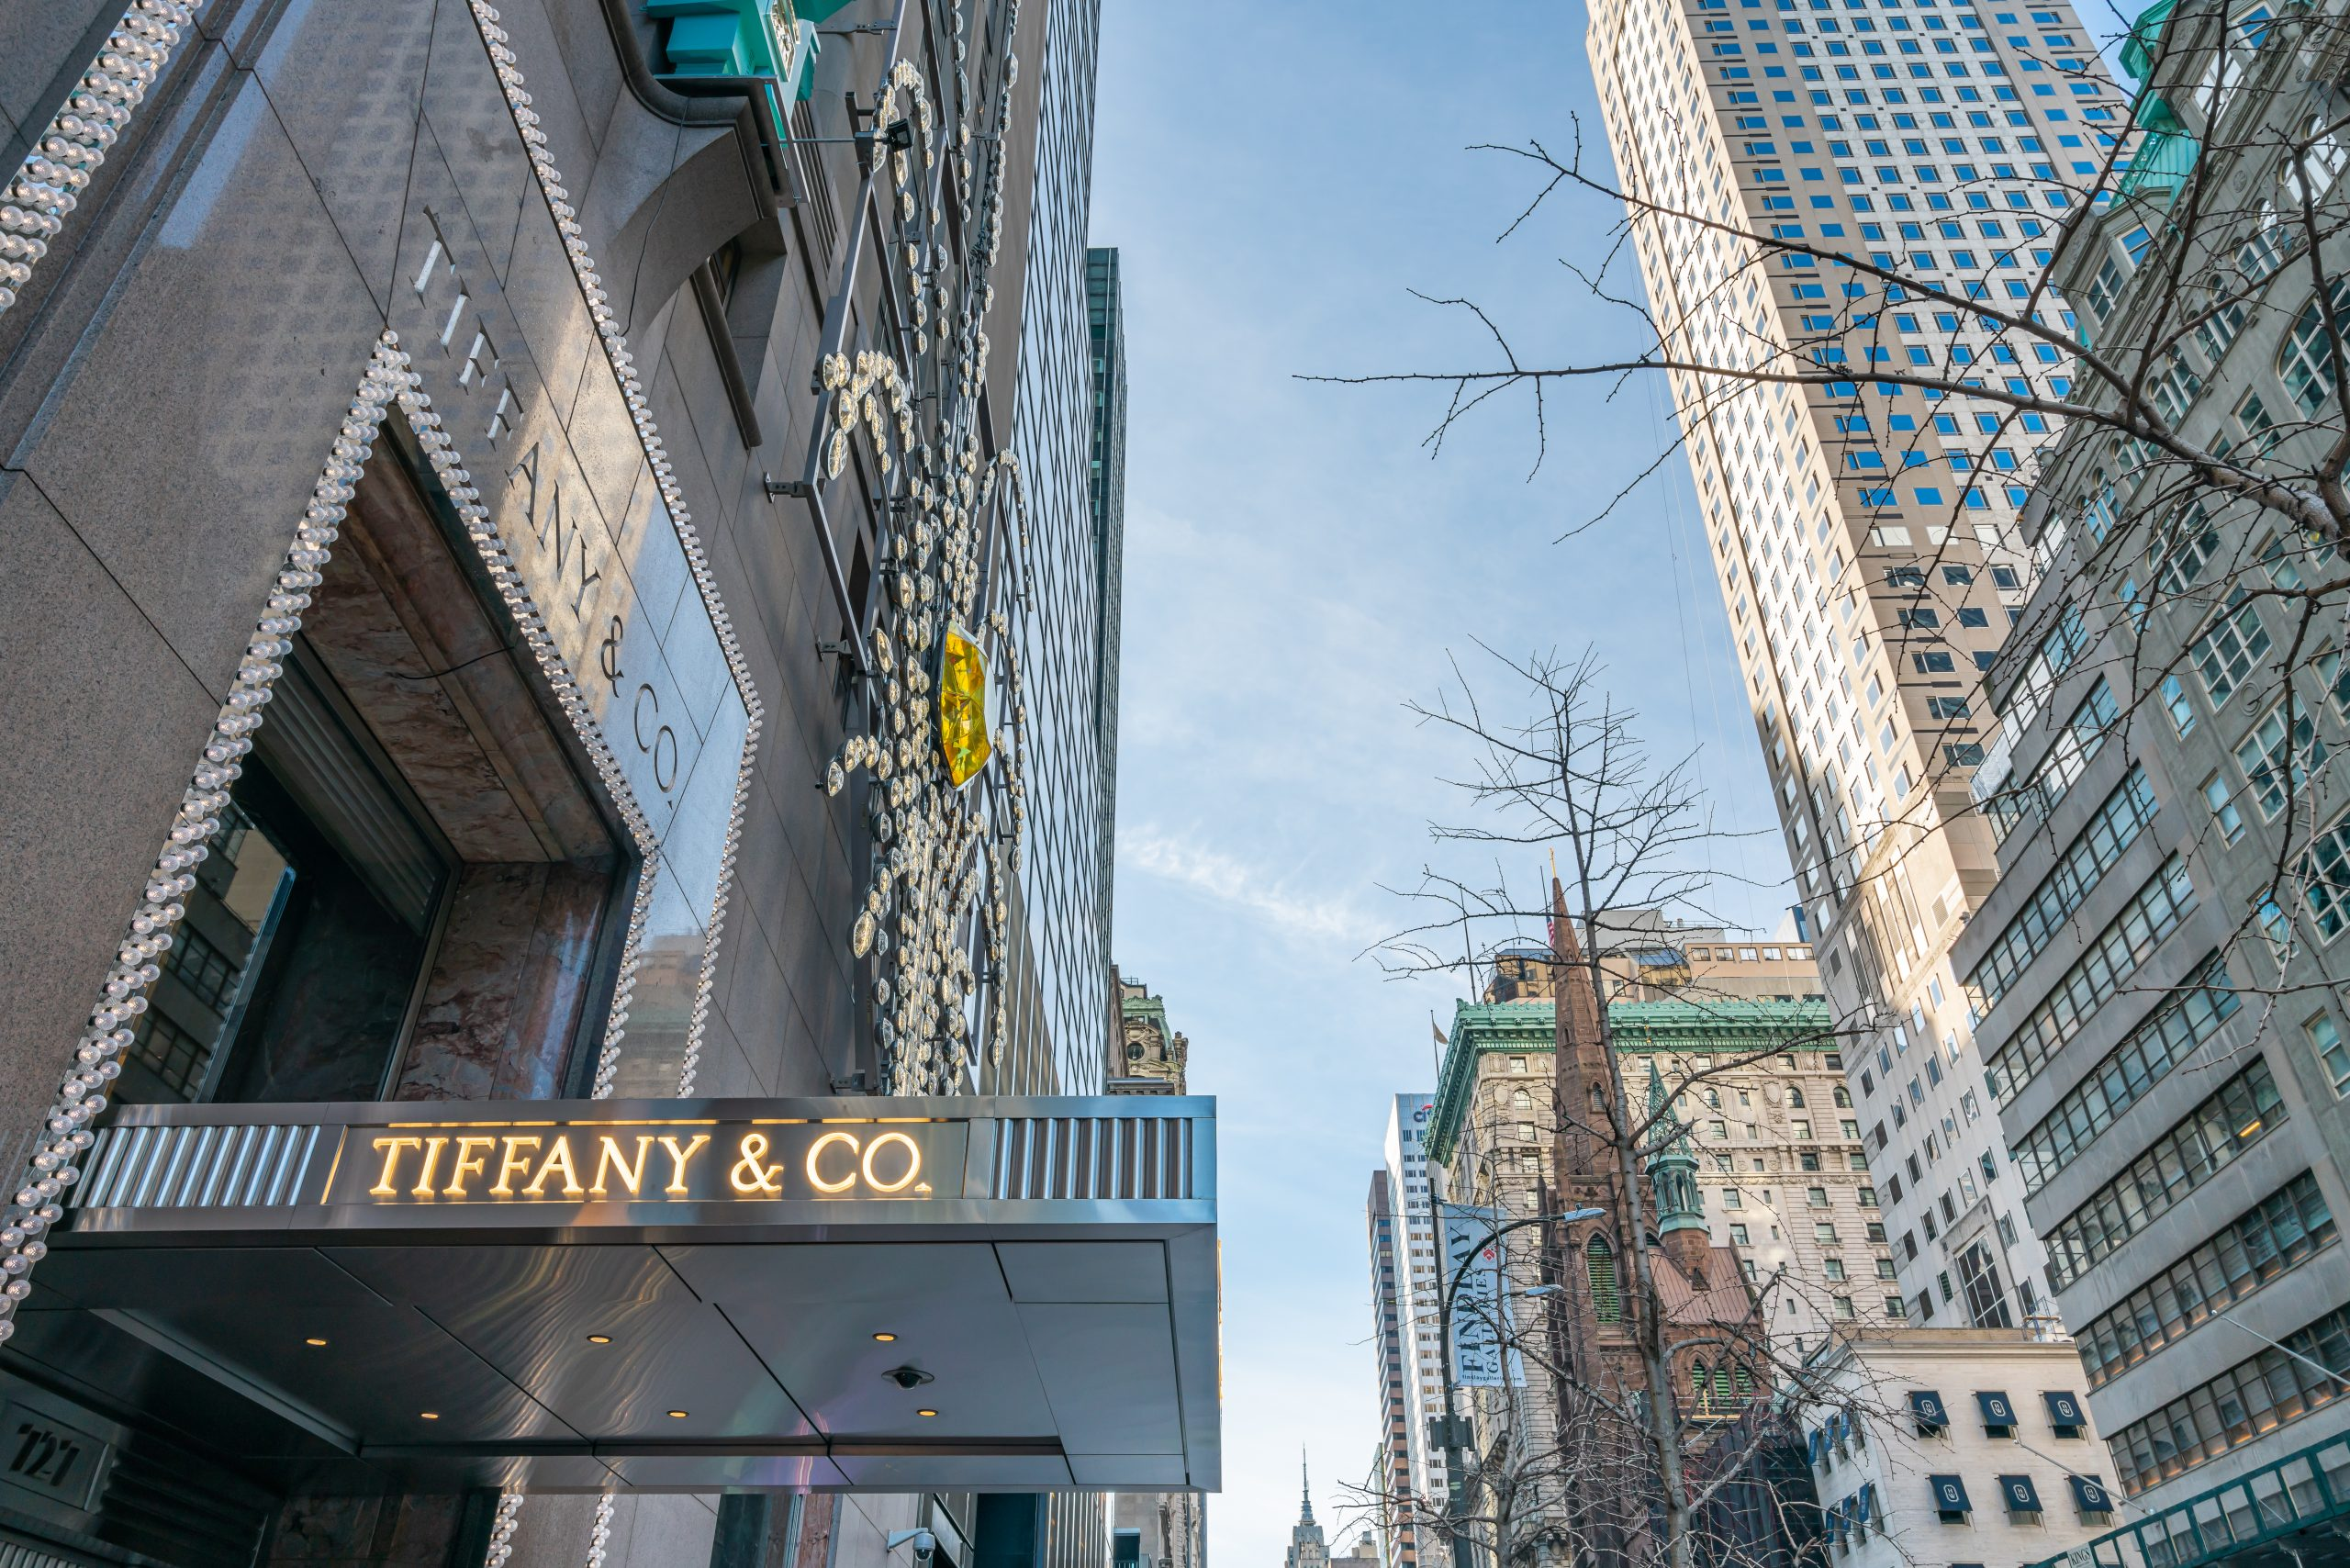 Complications in the Tiffany takeover by LVMH